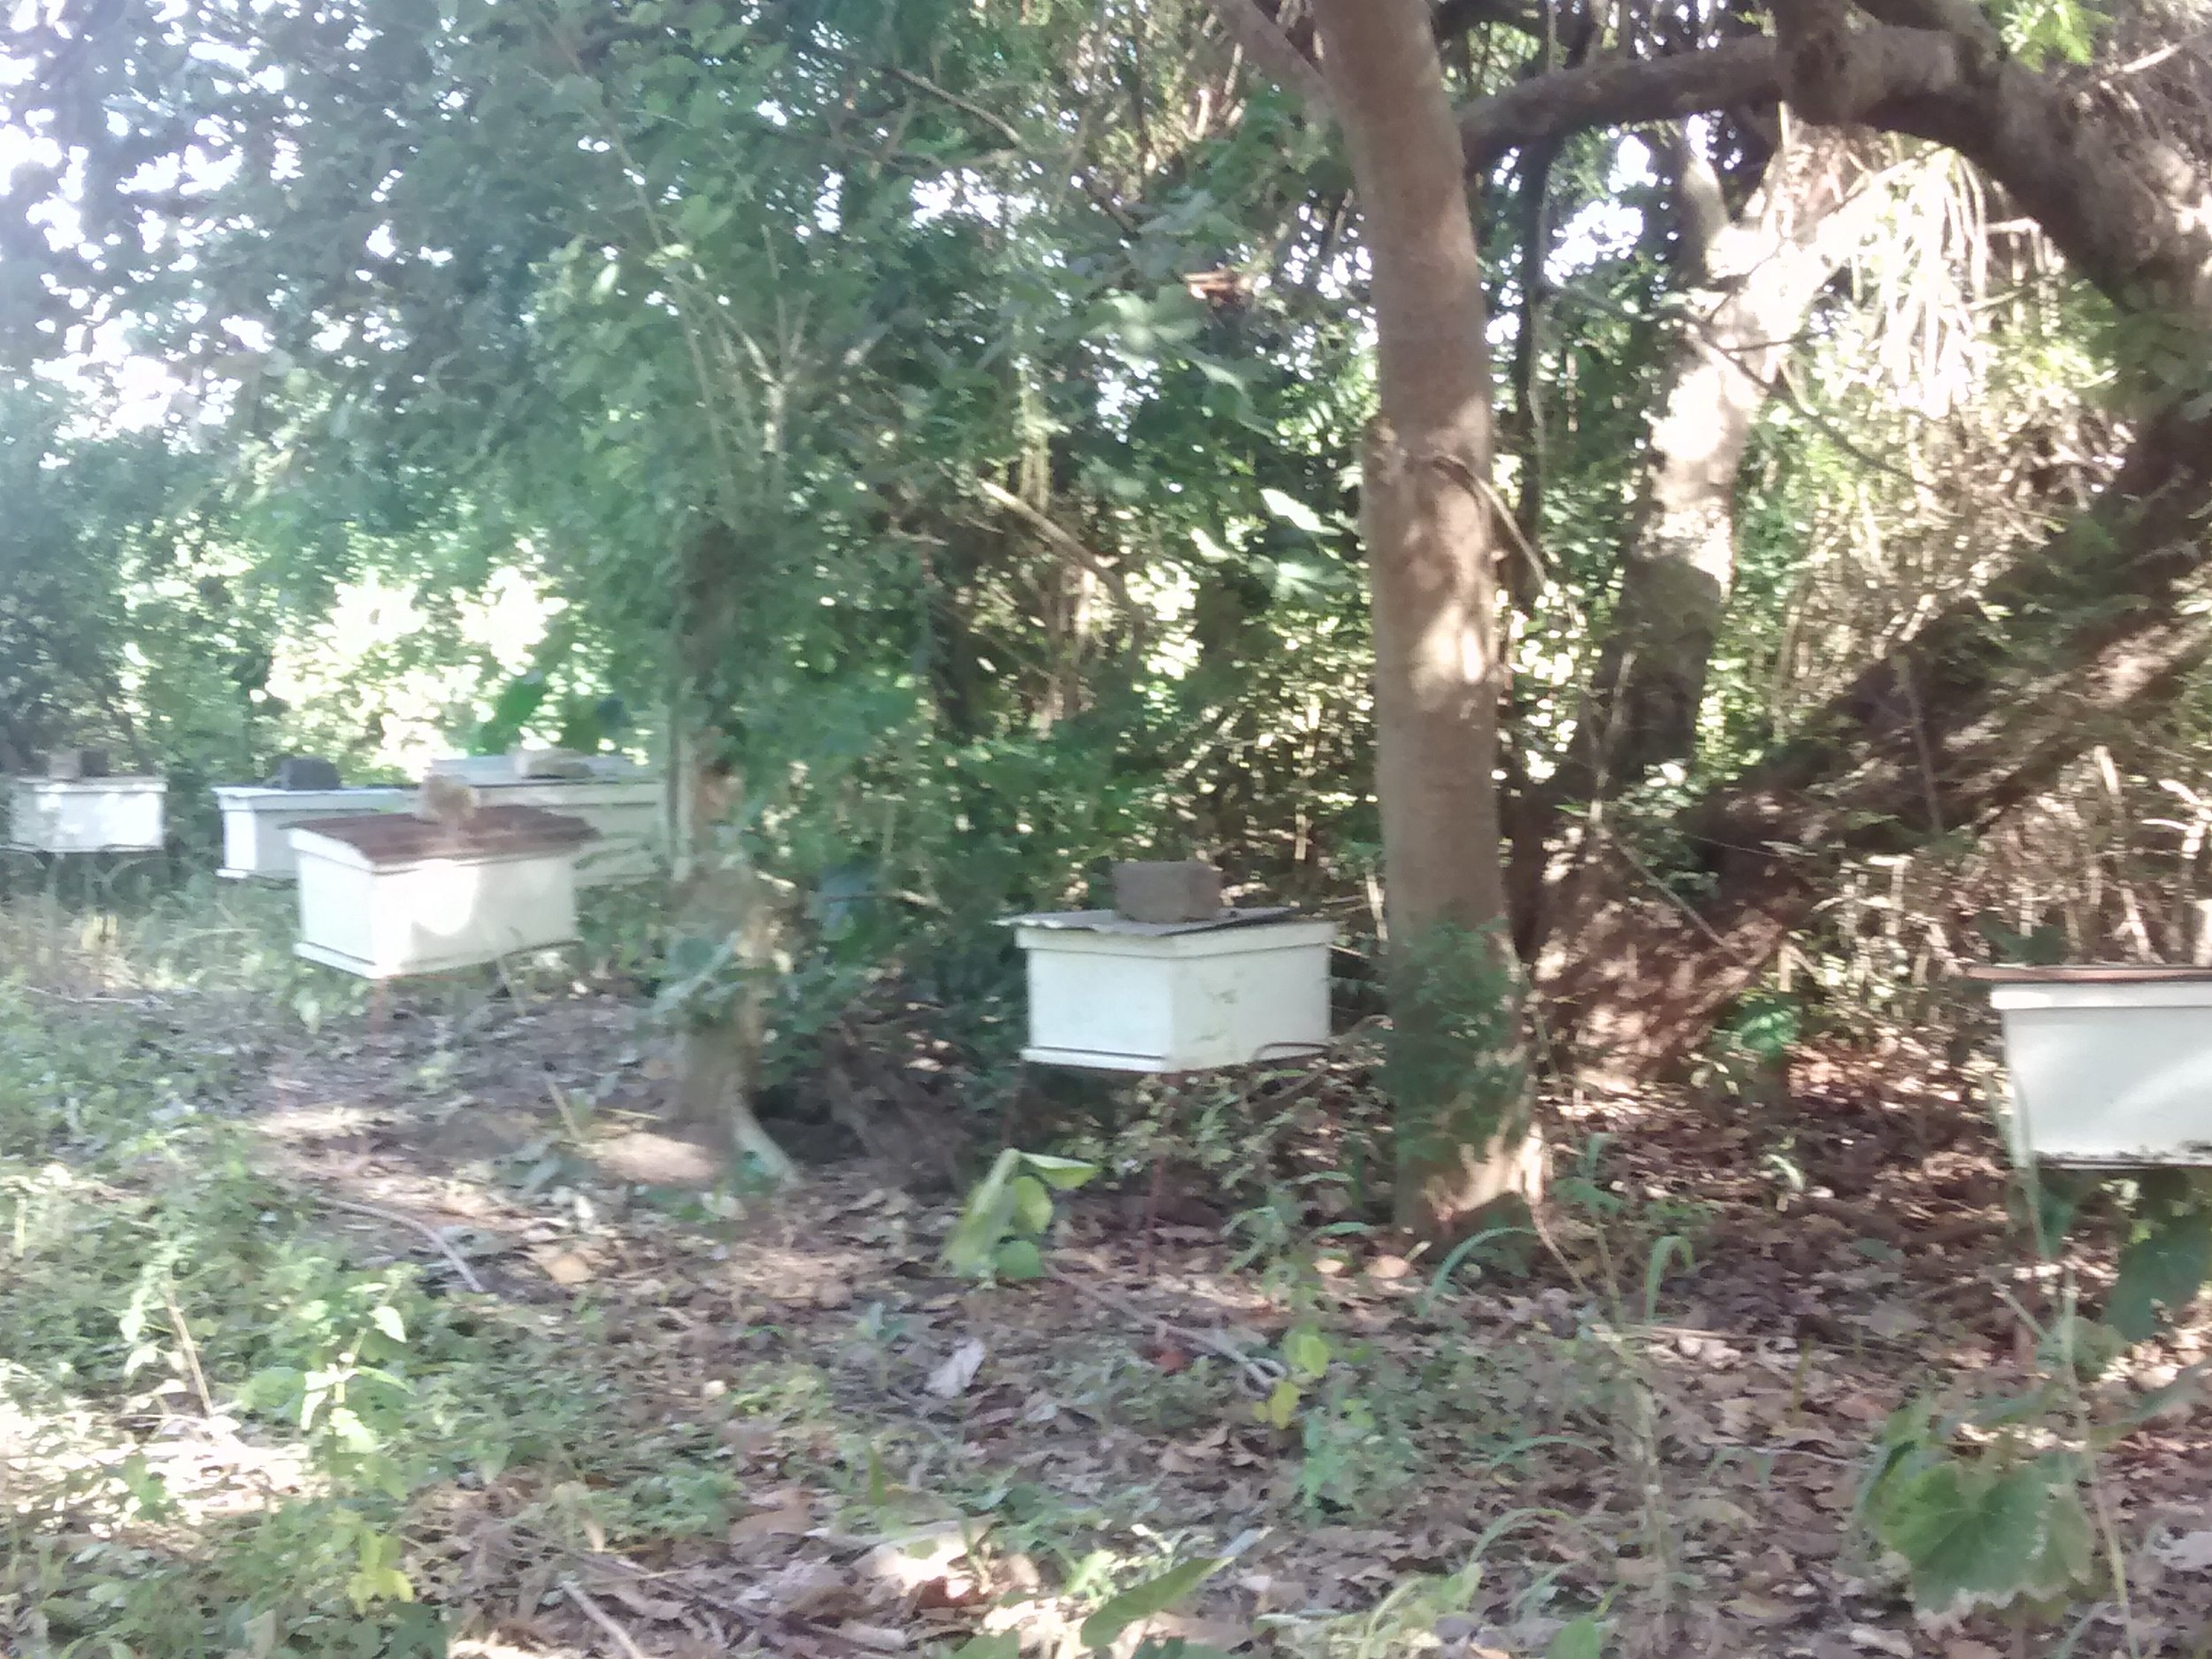 Langstoth hives perched under the mango and cashew canopy at farms around Missirah. Photo by Erin Schneider